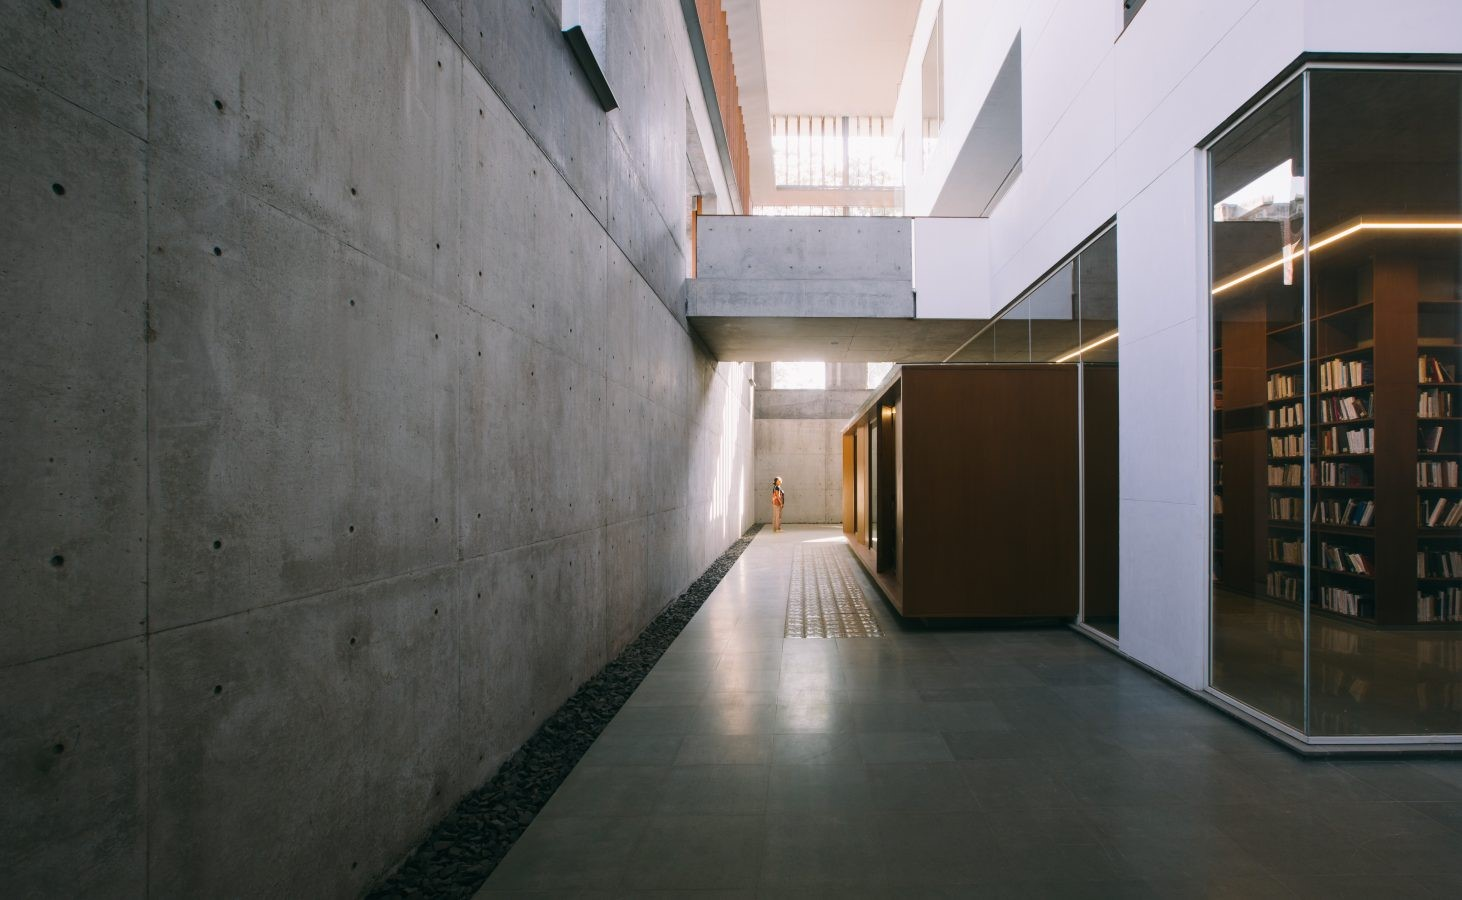 The CEPT University Library, Ahmedabad by Rahul Mehrotra: Spaces within the spaces - Sheet3